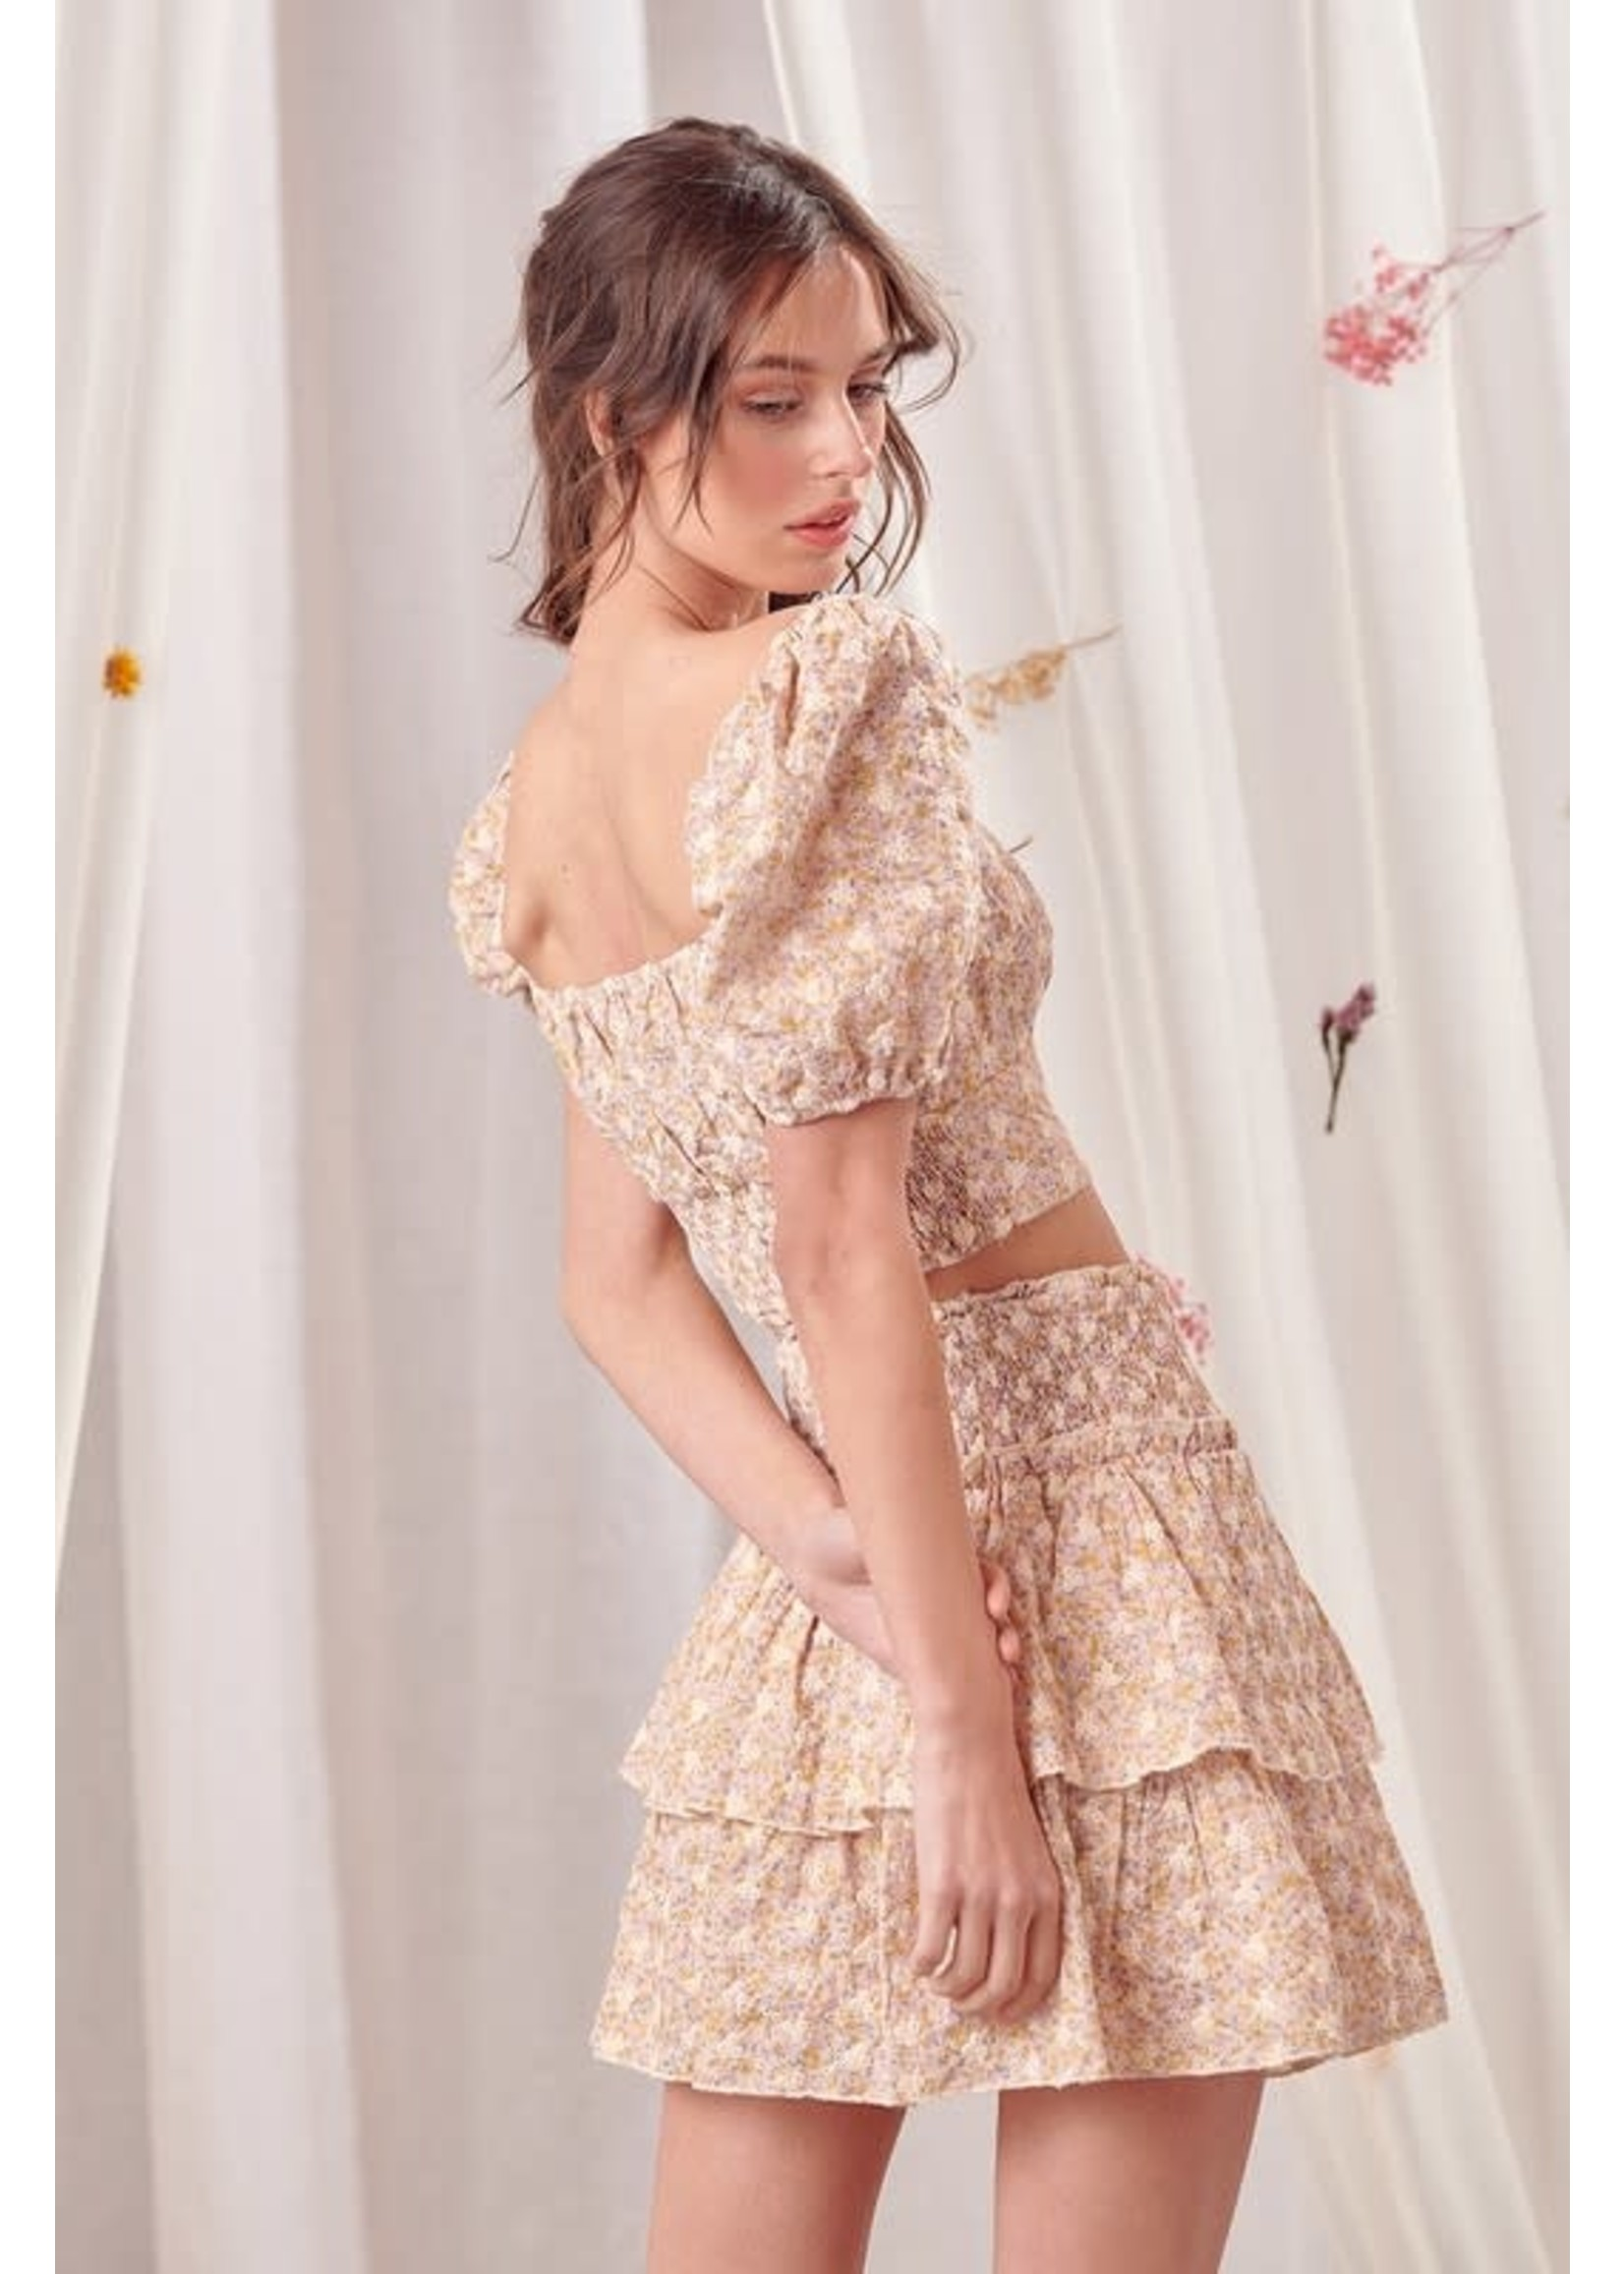 Storia Embroidered Puffed Sleeve Crop Top - BT1863